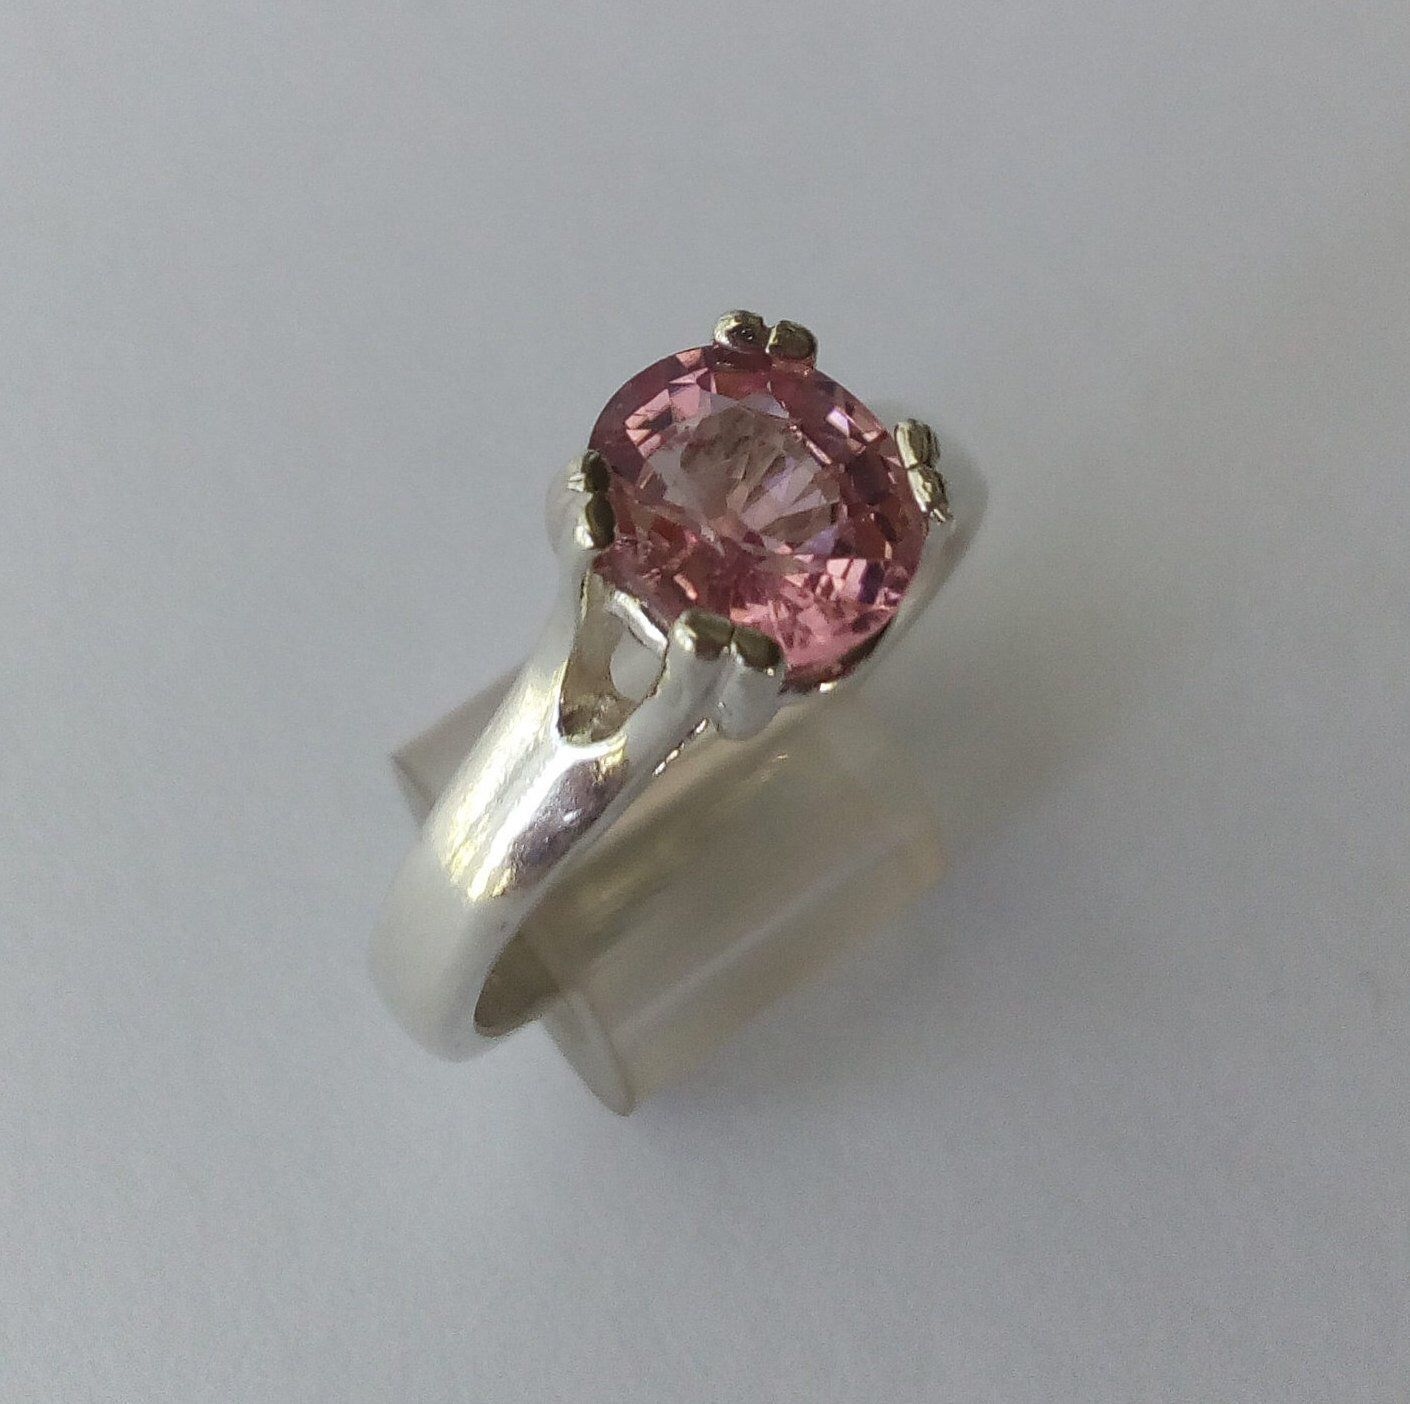 PINK TOURMALINE PEAR Shape 925 Sterling Silver Ring October Gemstone Tourmaline engagement ring Beautiful Gift for her.....